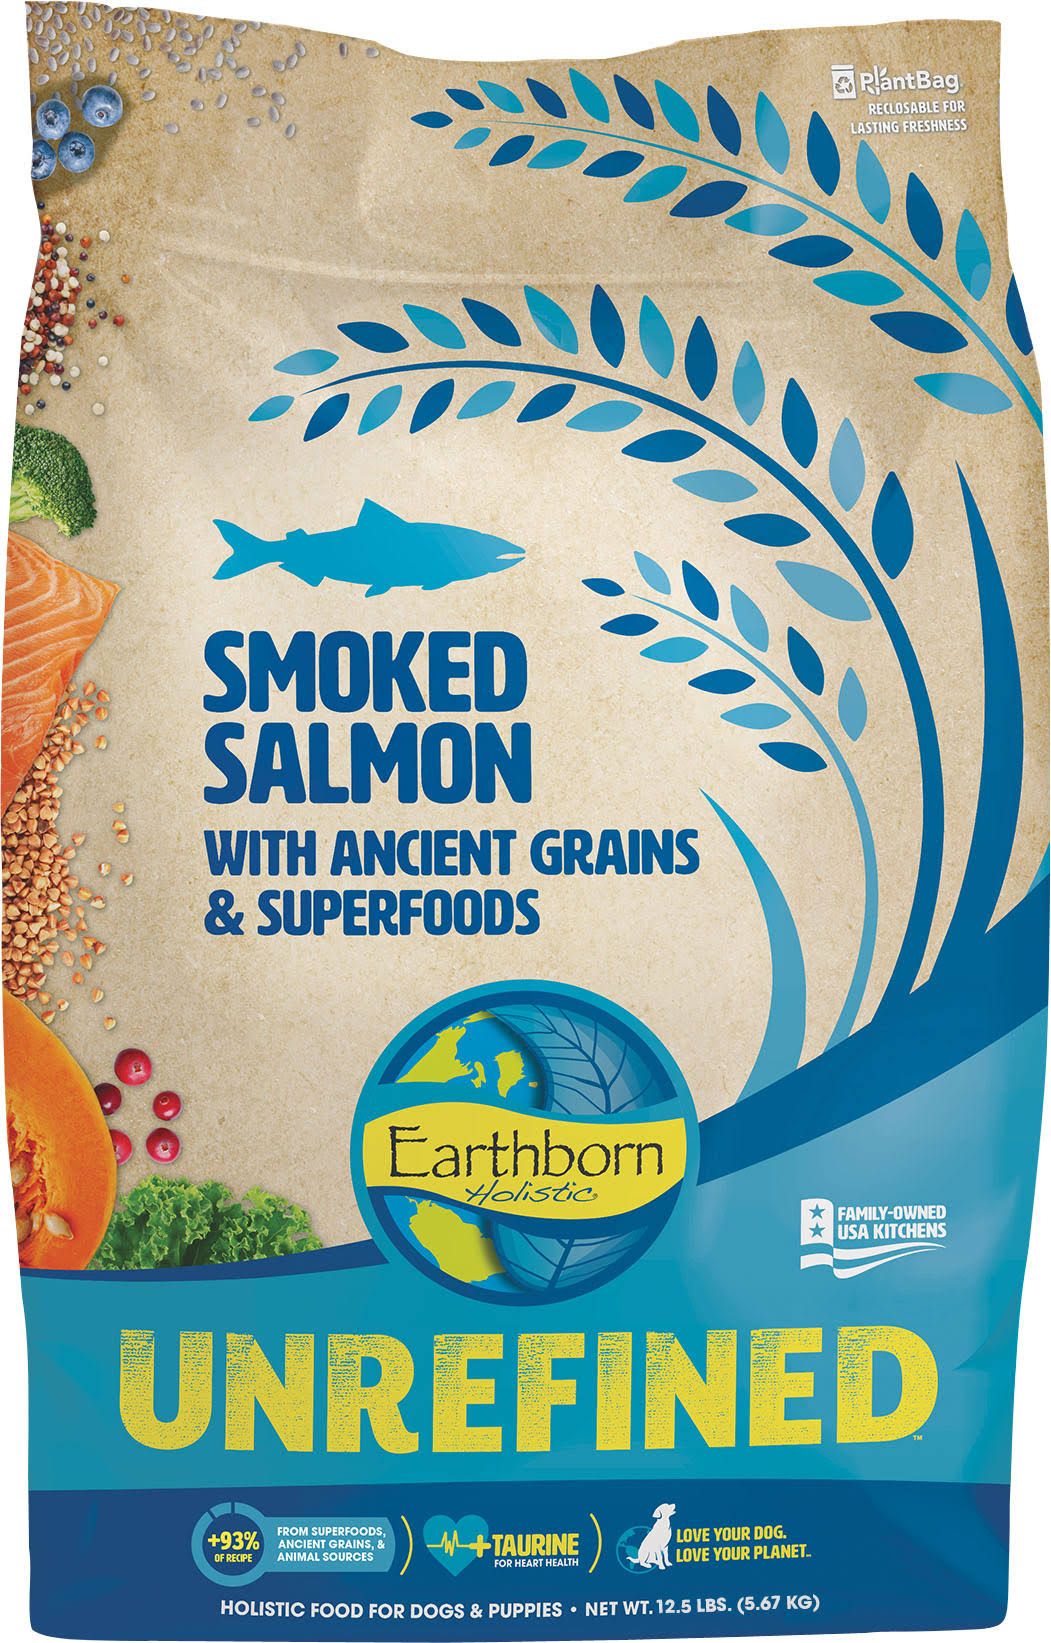 Earthborn Holistic Unrefined Smoked Salmon with Ancient Grains & Superfoods Dry Dog Food, 12.5-lb